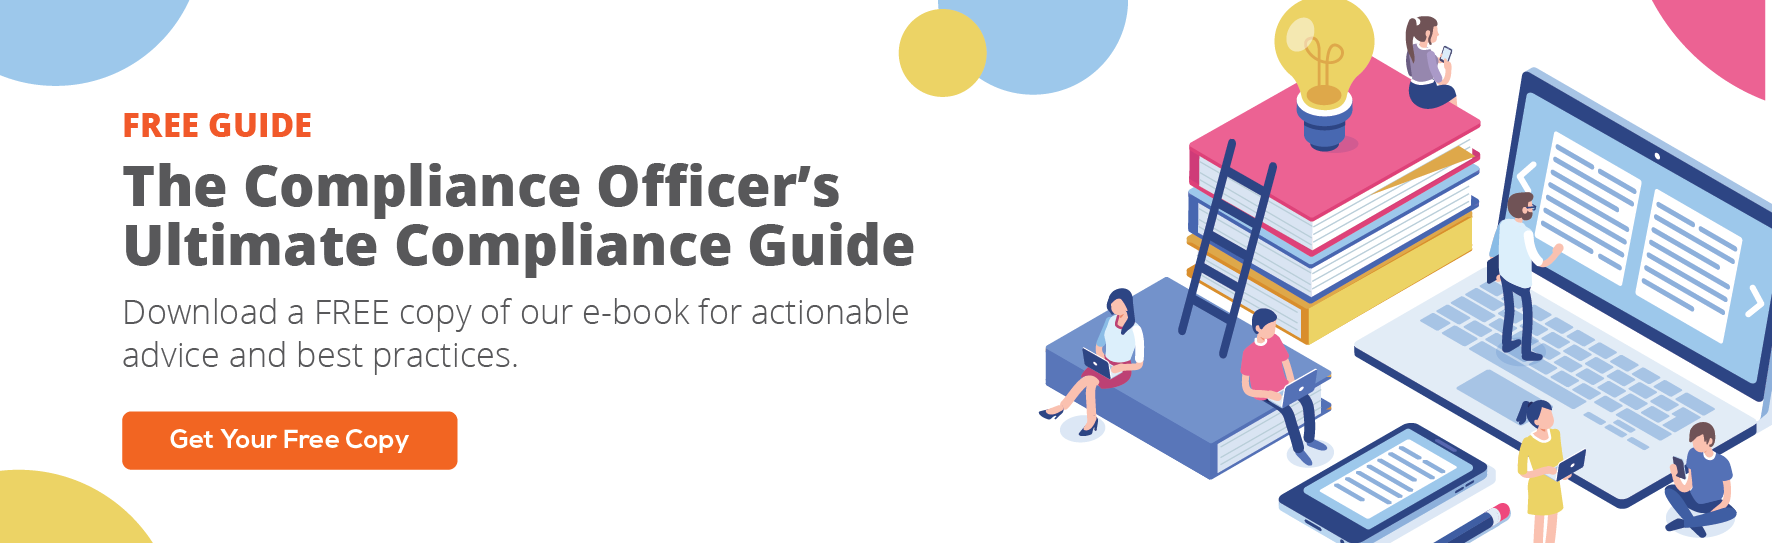 The Compliance Officer's Ultimate Compliance Guide